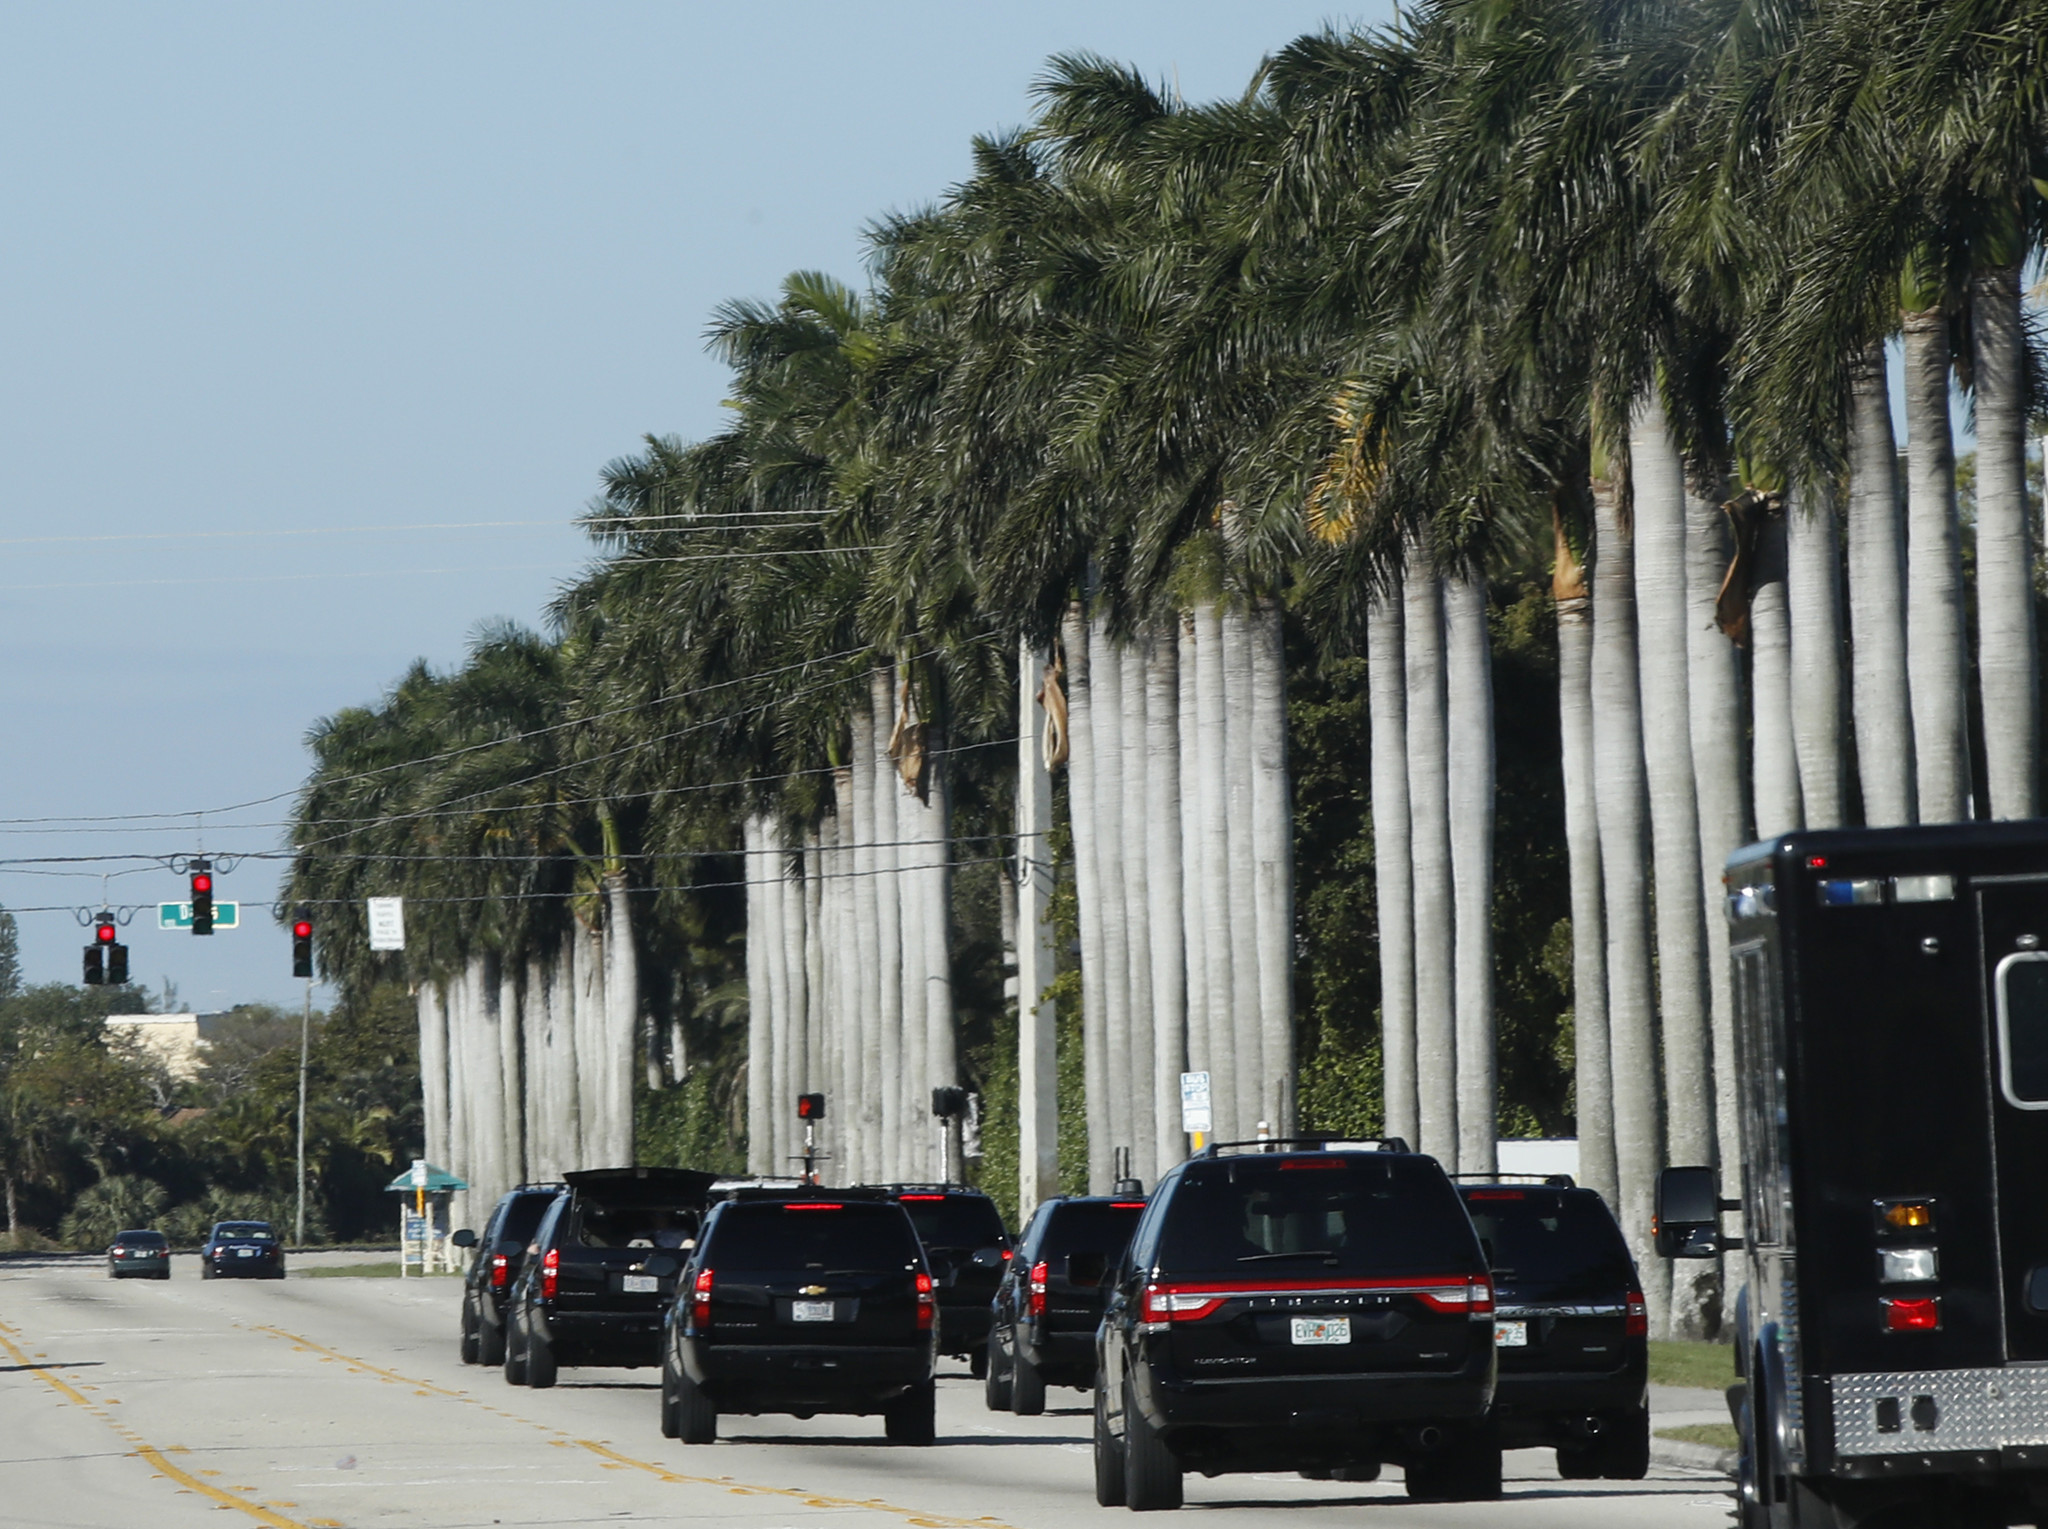 President Trump's motorcade drives in West Palm Beach Fla. toward the Trump International Golf Club on Saturday